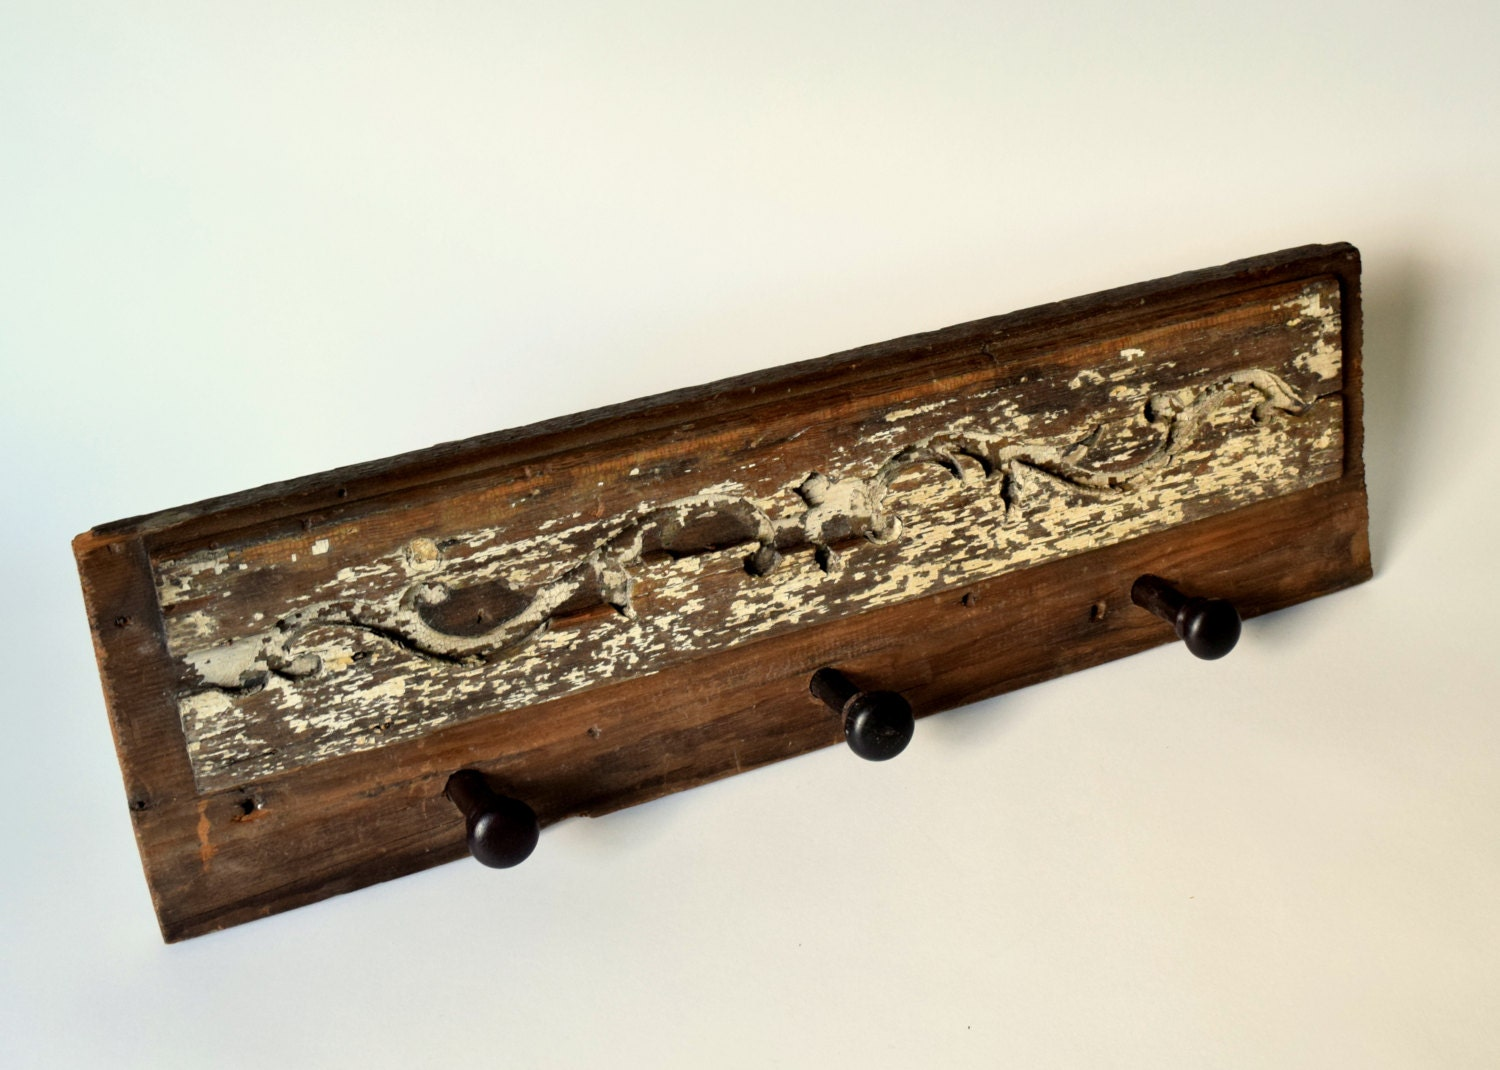 Rustic Peg Coat Rack Wall Hanging Coat Hooks By. Kitchen Drawer Organizers. Beach Picture Frames. Outdoor Pillows. Country Landscapes. Ny City Blinds. Wolf 48 Gas Range. Deep Seated Sofa Sectional. Wood Dining Bench